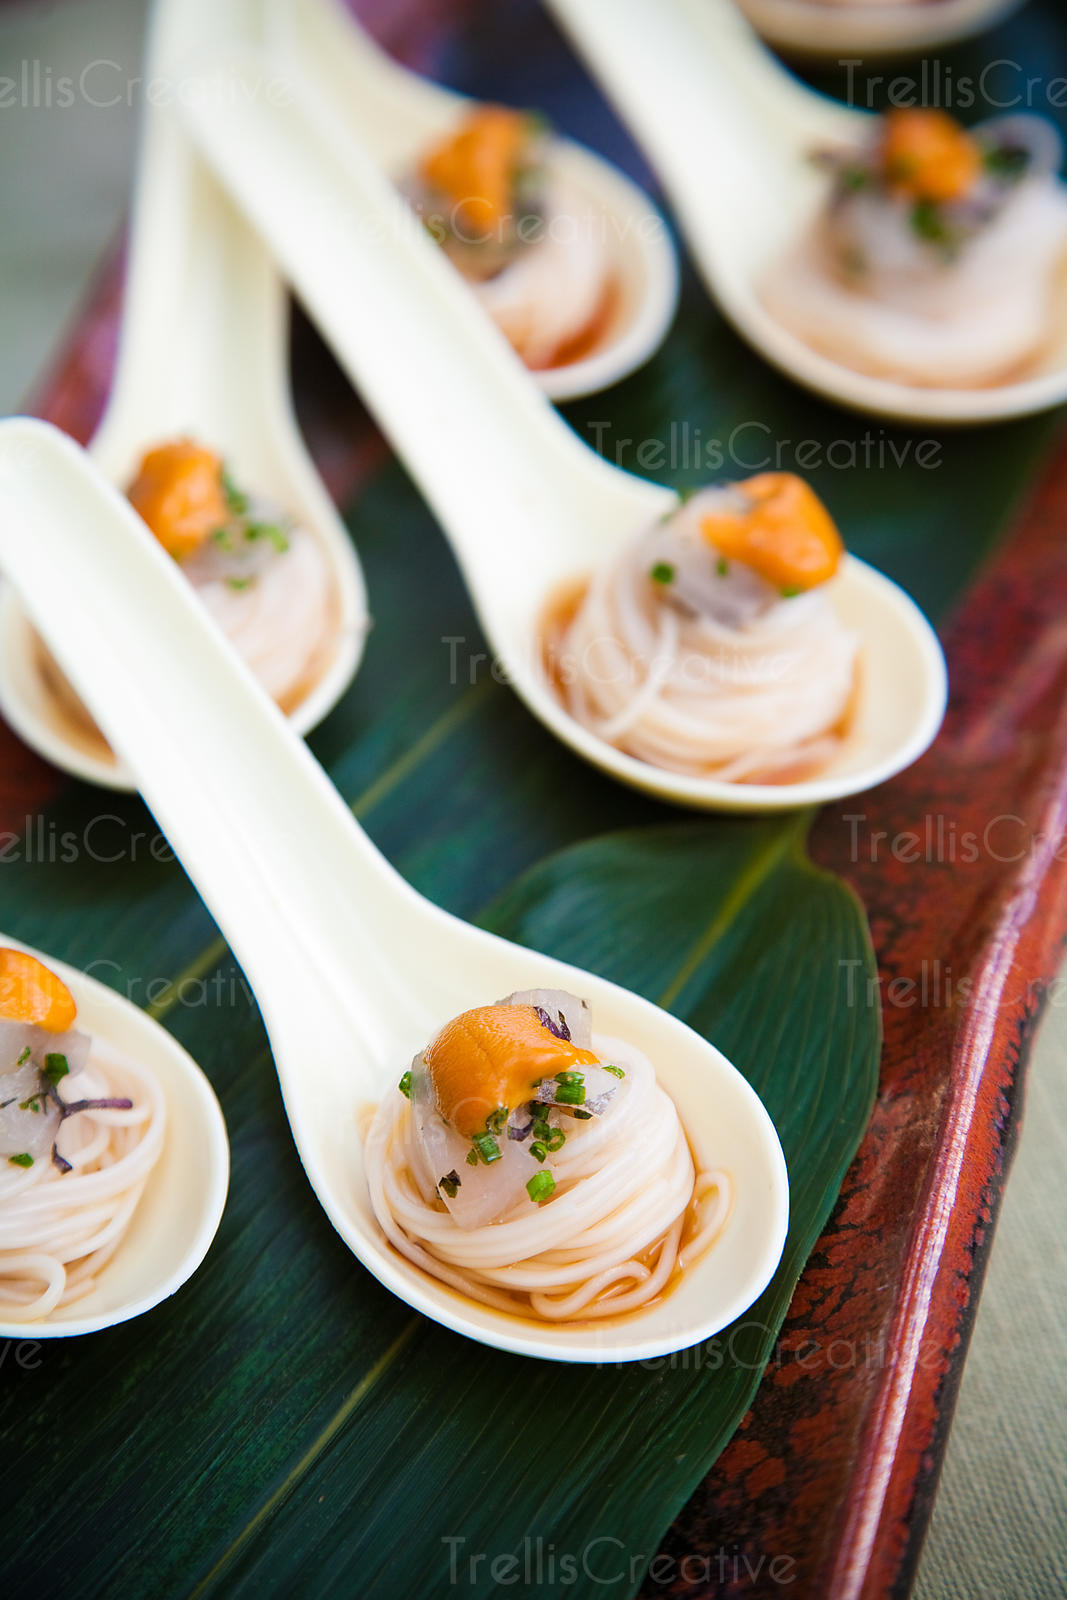 Swirrled udon noodles displayed on ivory spoons at a wedding reception